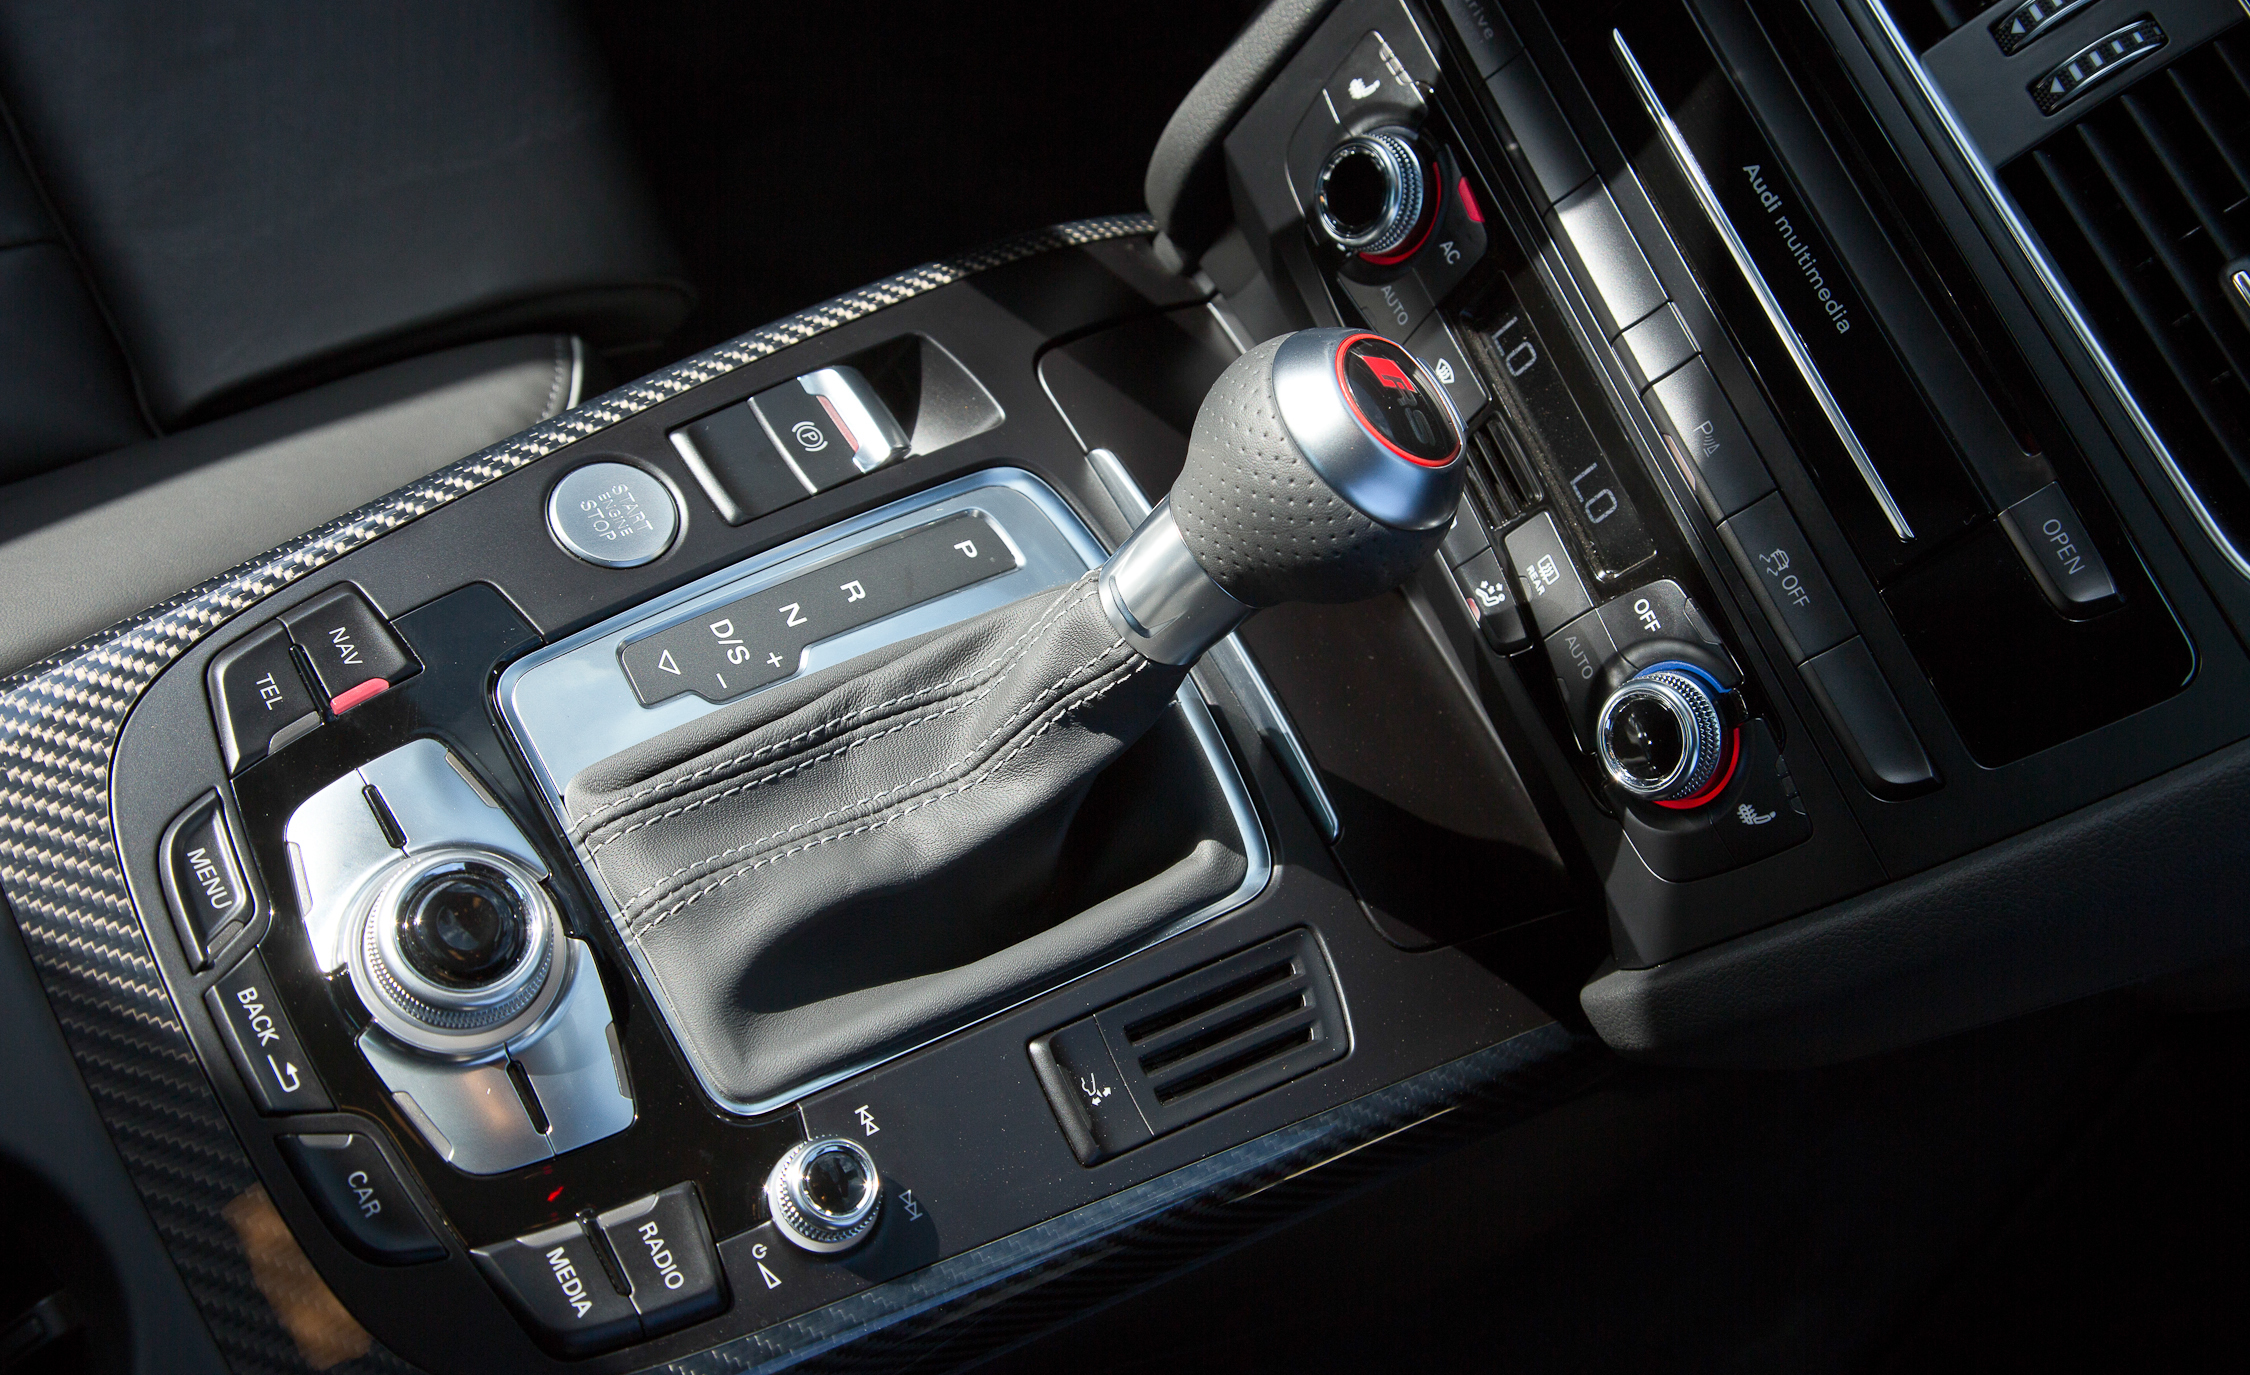 2013 Audi RS 5 Interior View Gear Shift Knob (View 3 of 41)